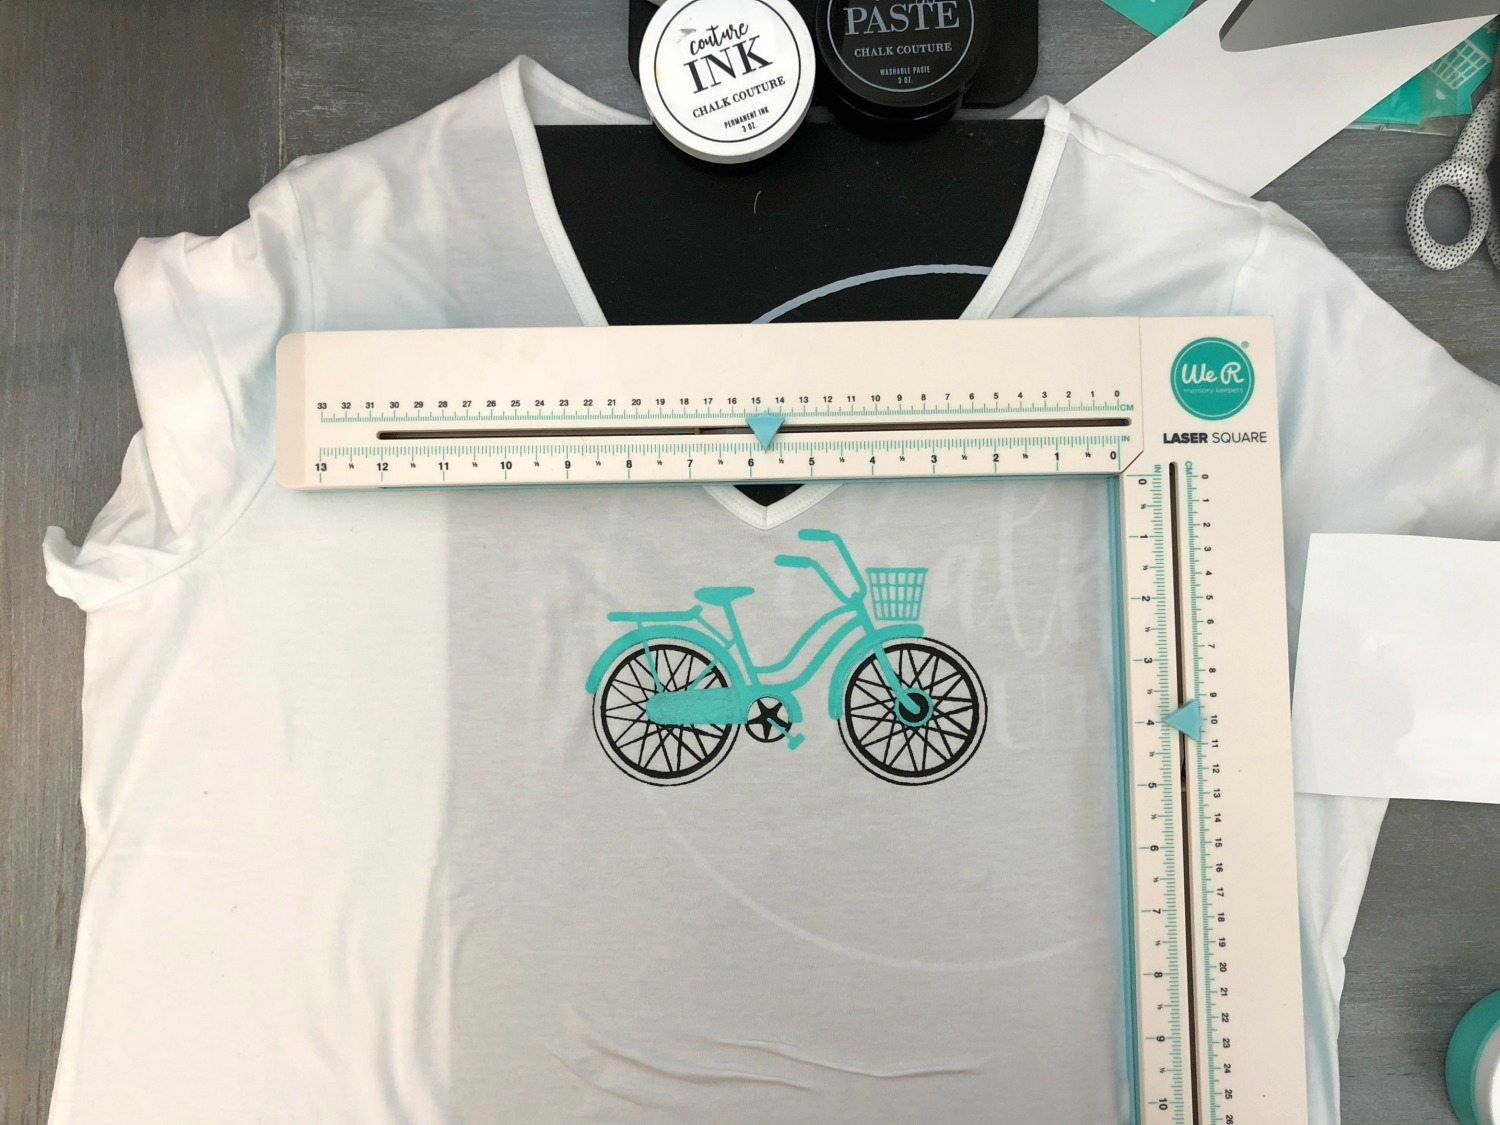 Diy Steps And Supplies For Chalk Couture Ink With Silk Screen Transfer At Home T Shirt Making